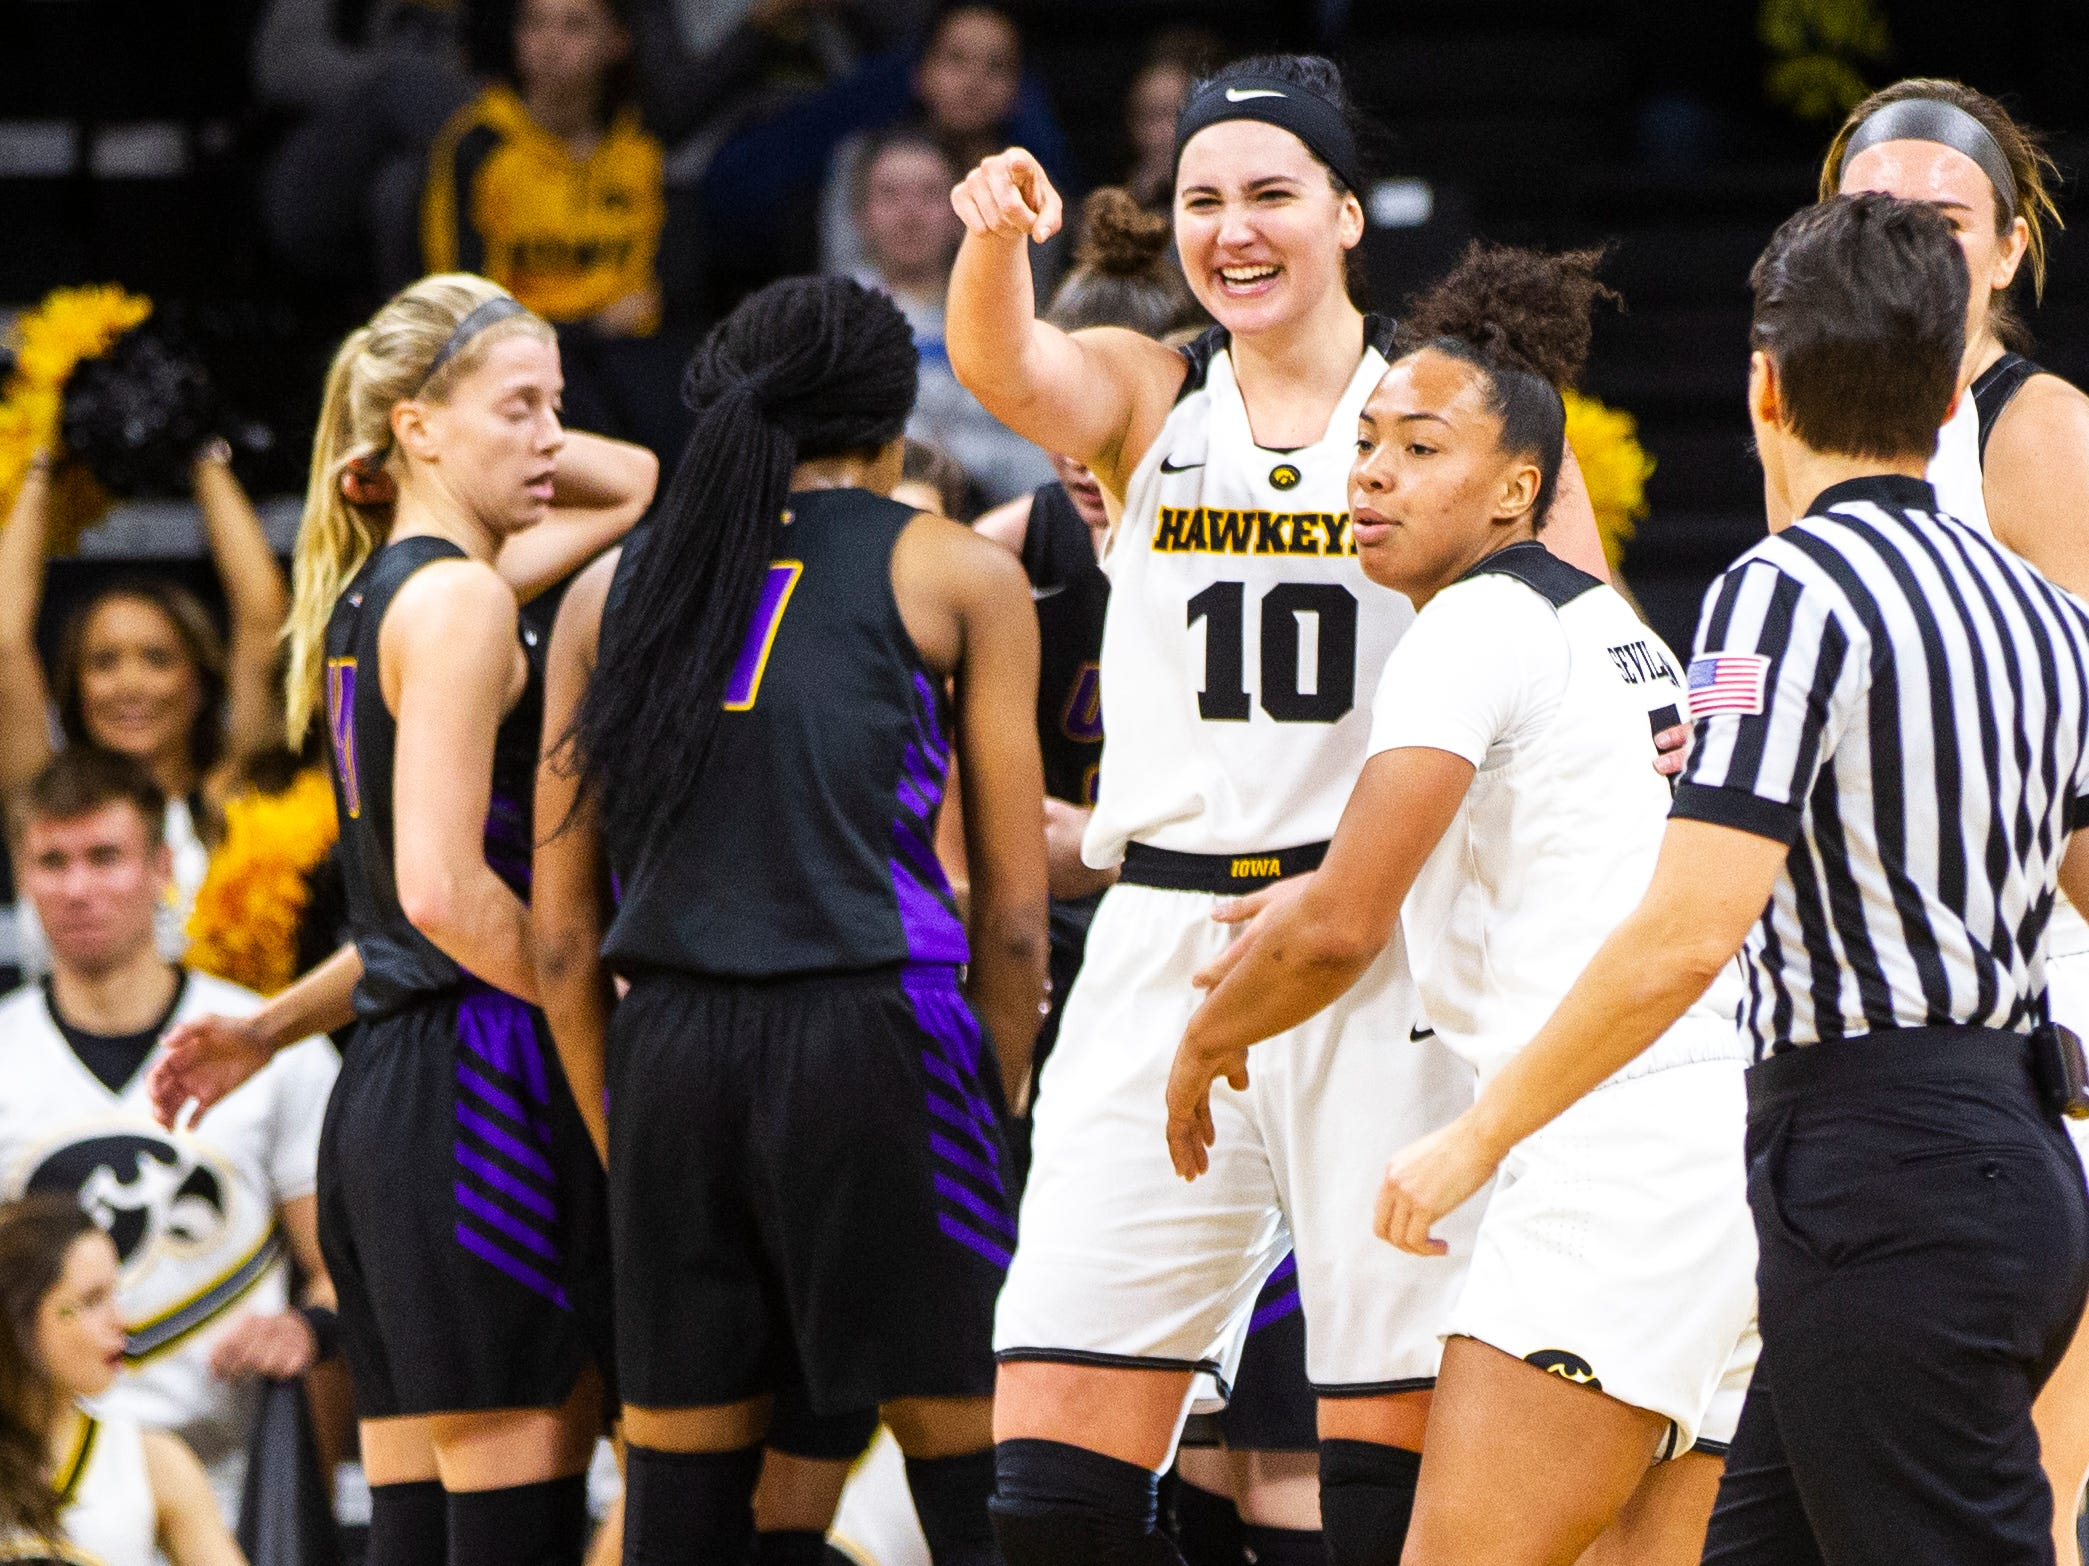 Iowa forward Megan Gustafson (10) celebrates after drawing a foul during a NCAA women's basketball game on Sunday, Dec. 16, 2018, at Carver-Hawkeye Arena in Iowa City.